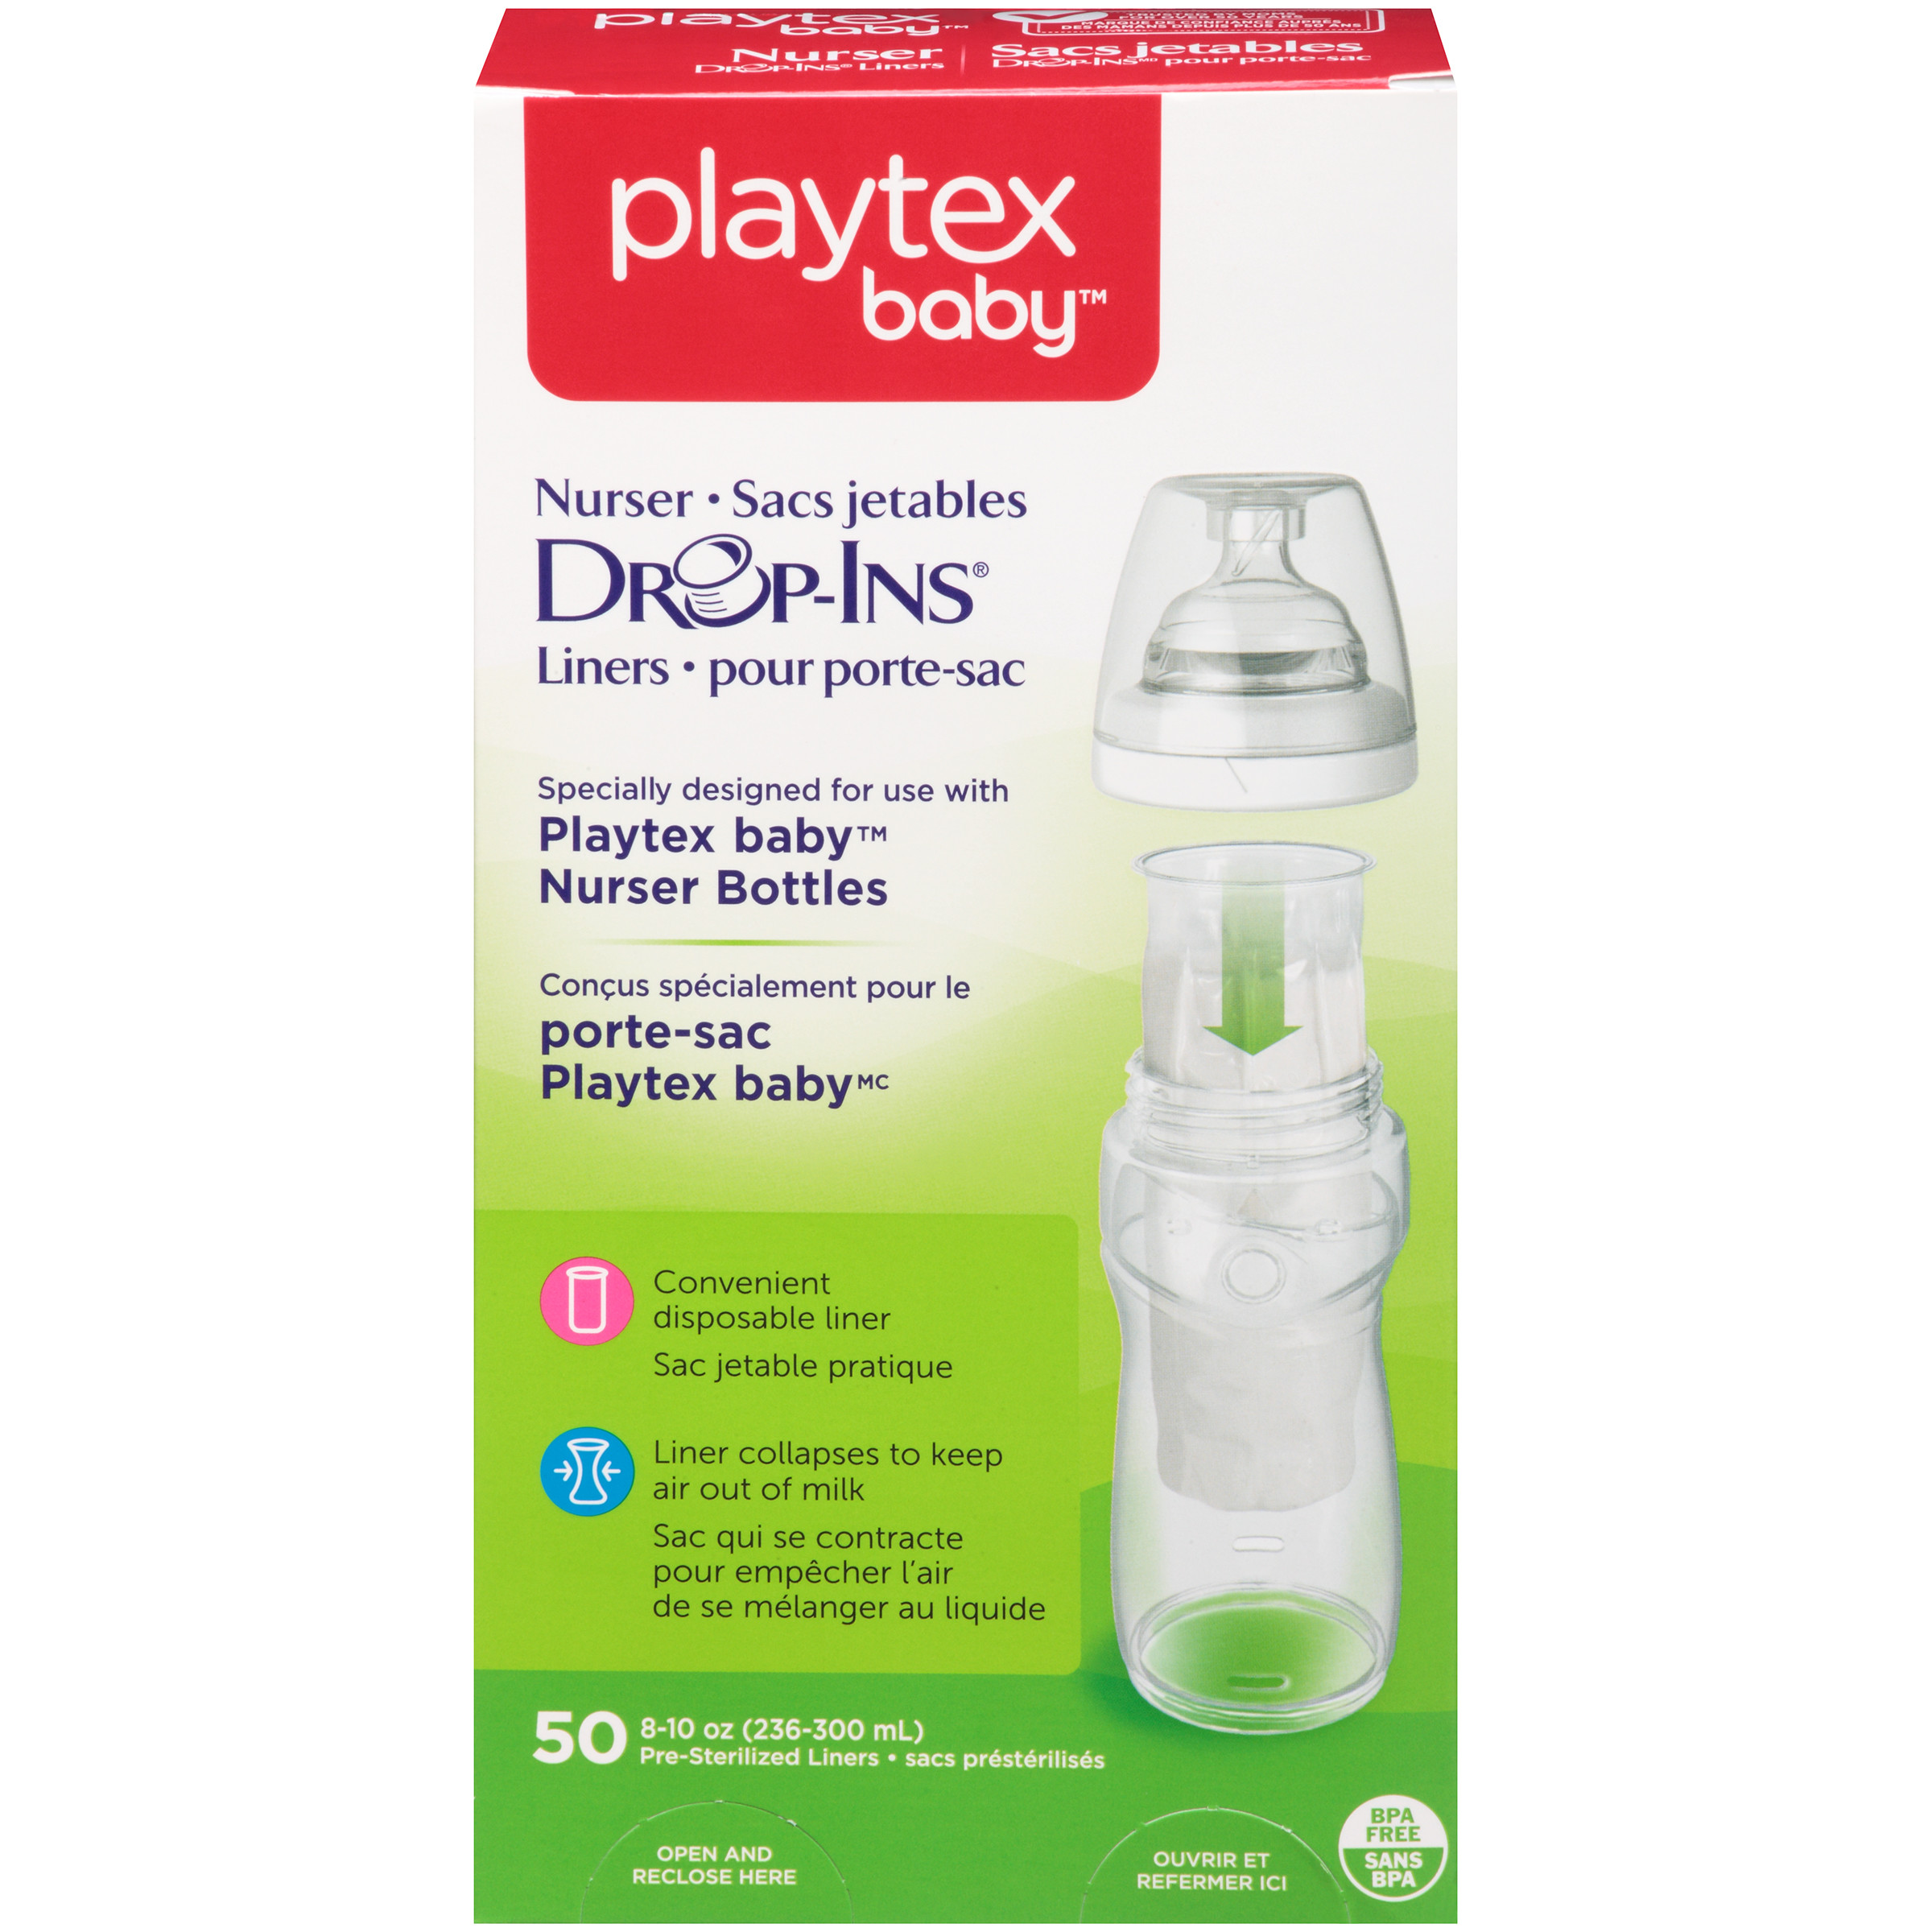 Playtex Baby Drop-Ins Liners For Playtex Baby Nurser Bottles 8-10oz 50 count